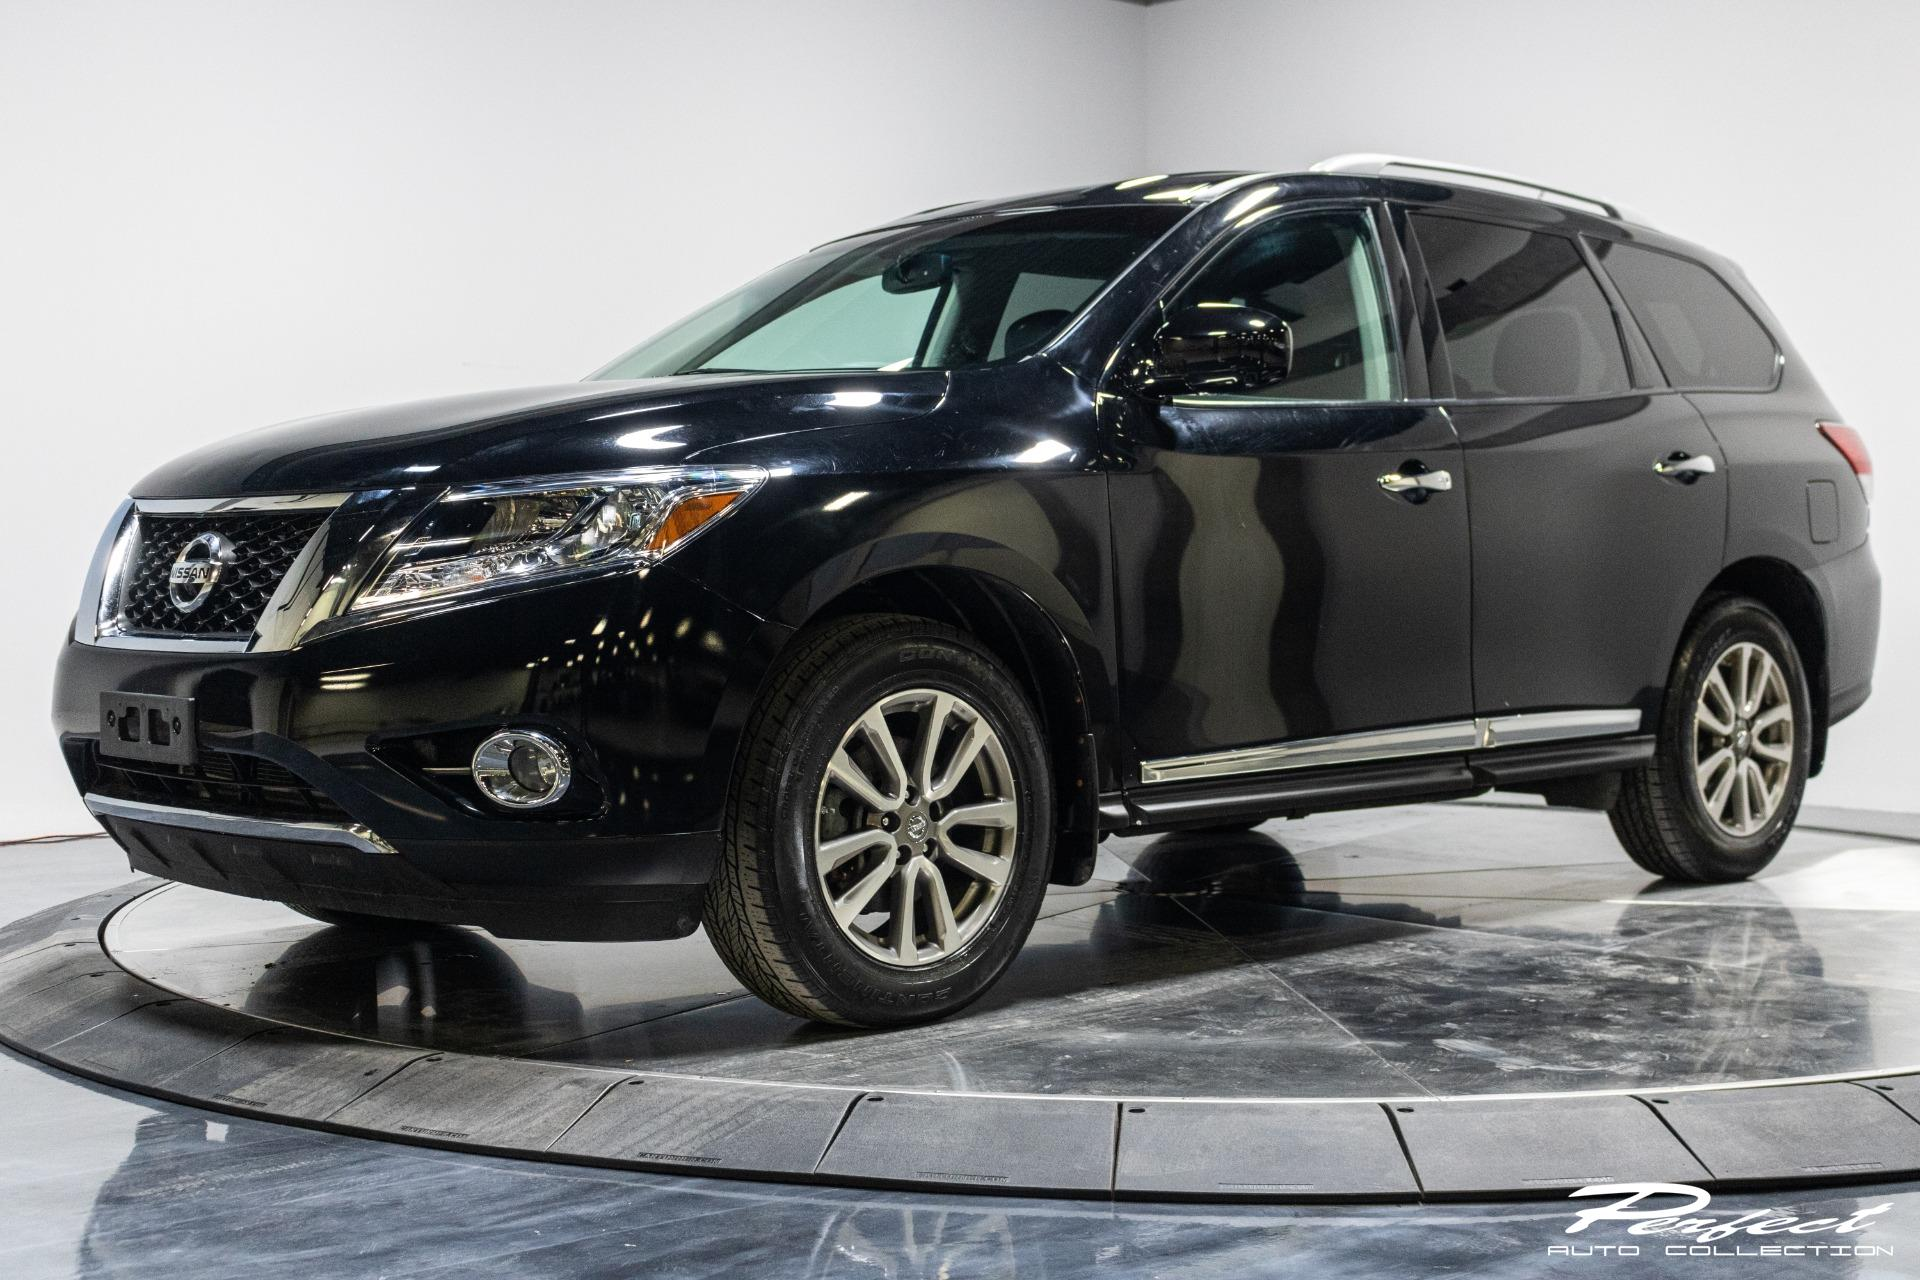 Used 2014 Nissan Pathfinder Platinum for sale $15,893 at Perfect Auto Collection in Akron OH 44310 1